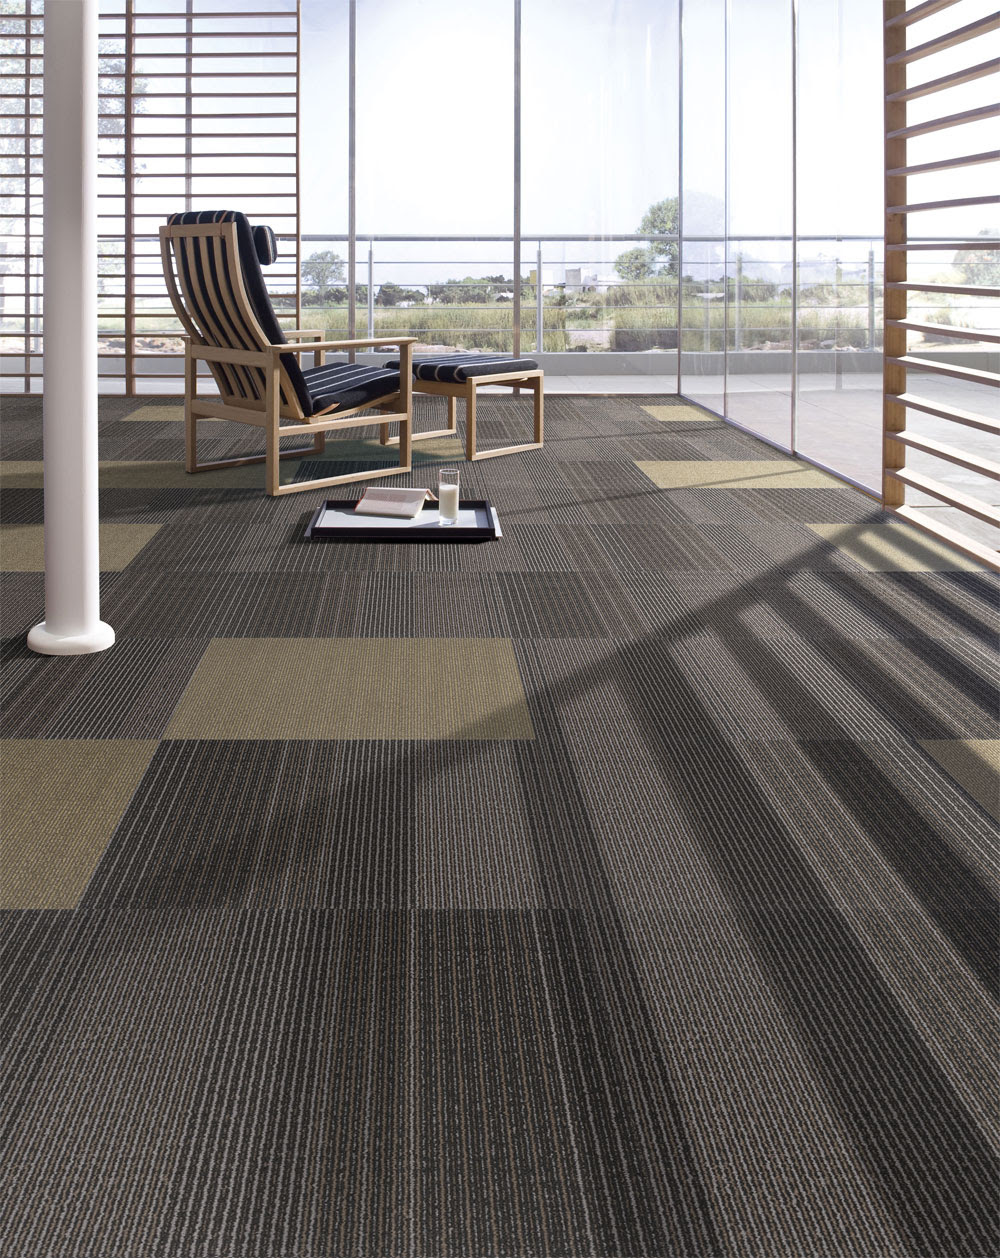 floor carpet for office boardroom carpet tiles nz KAYVJDU